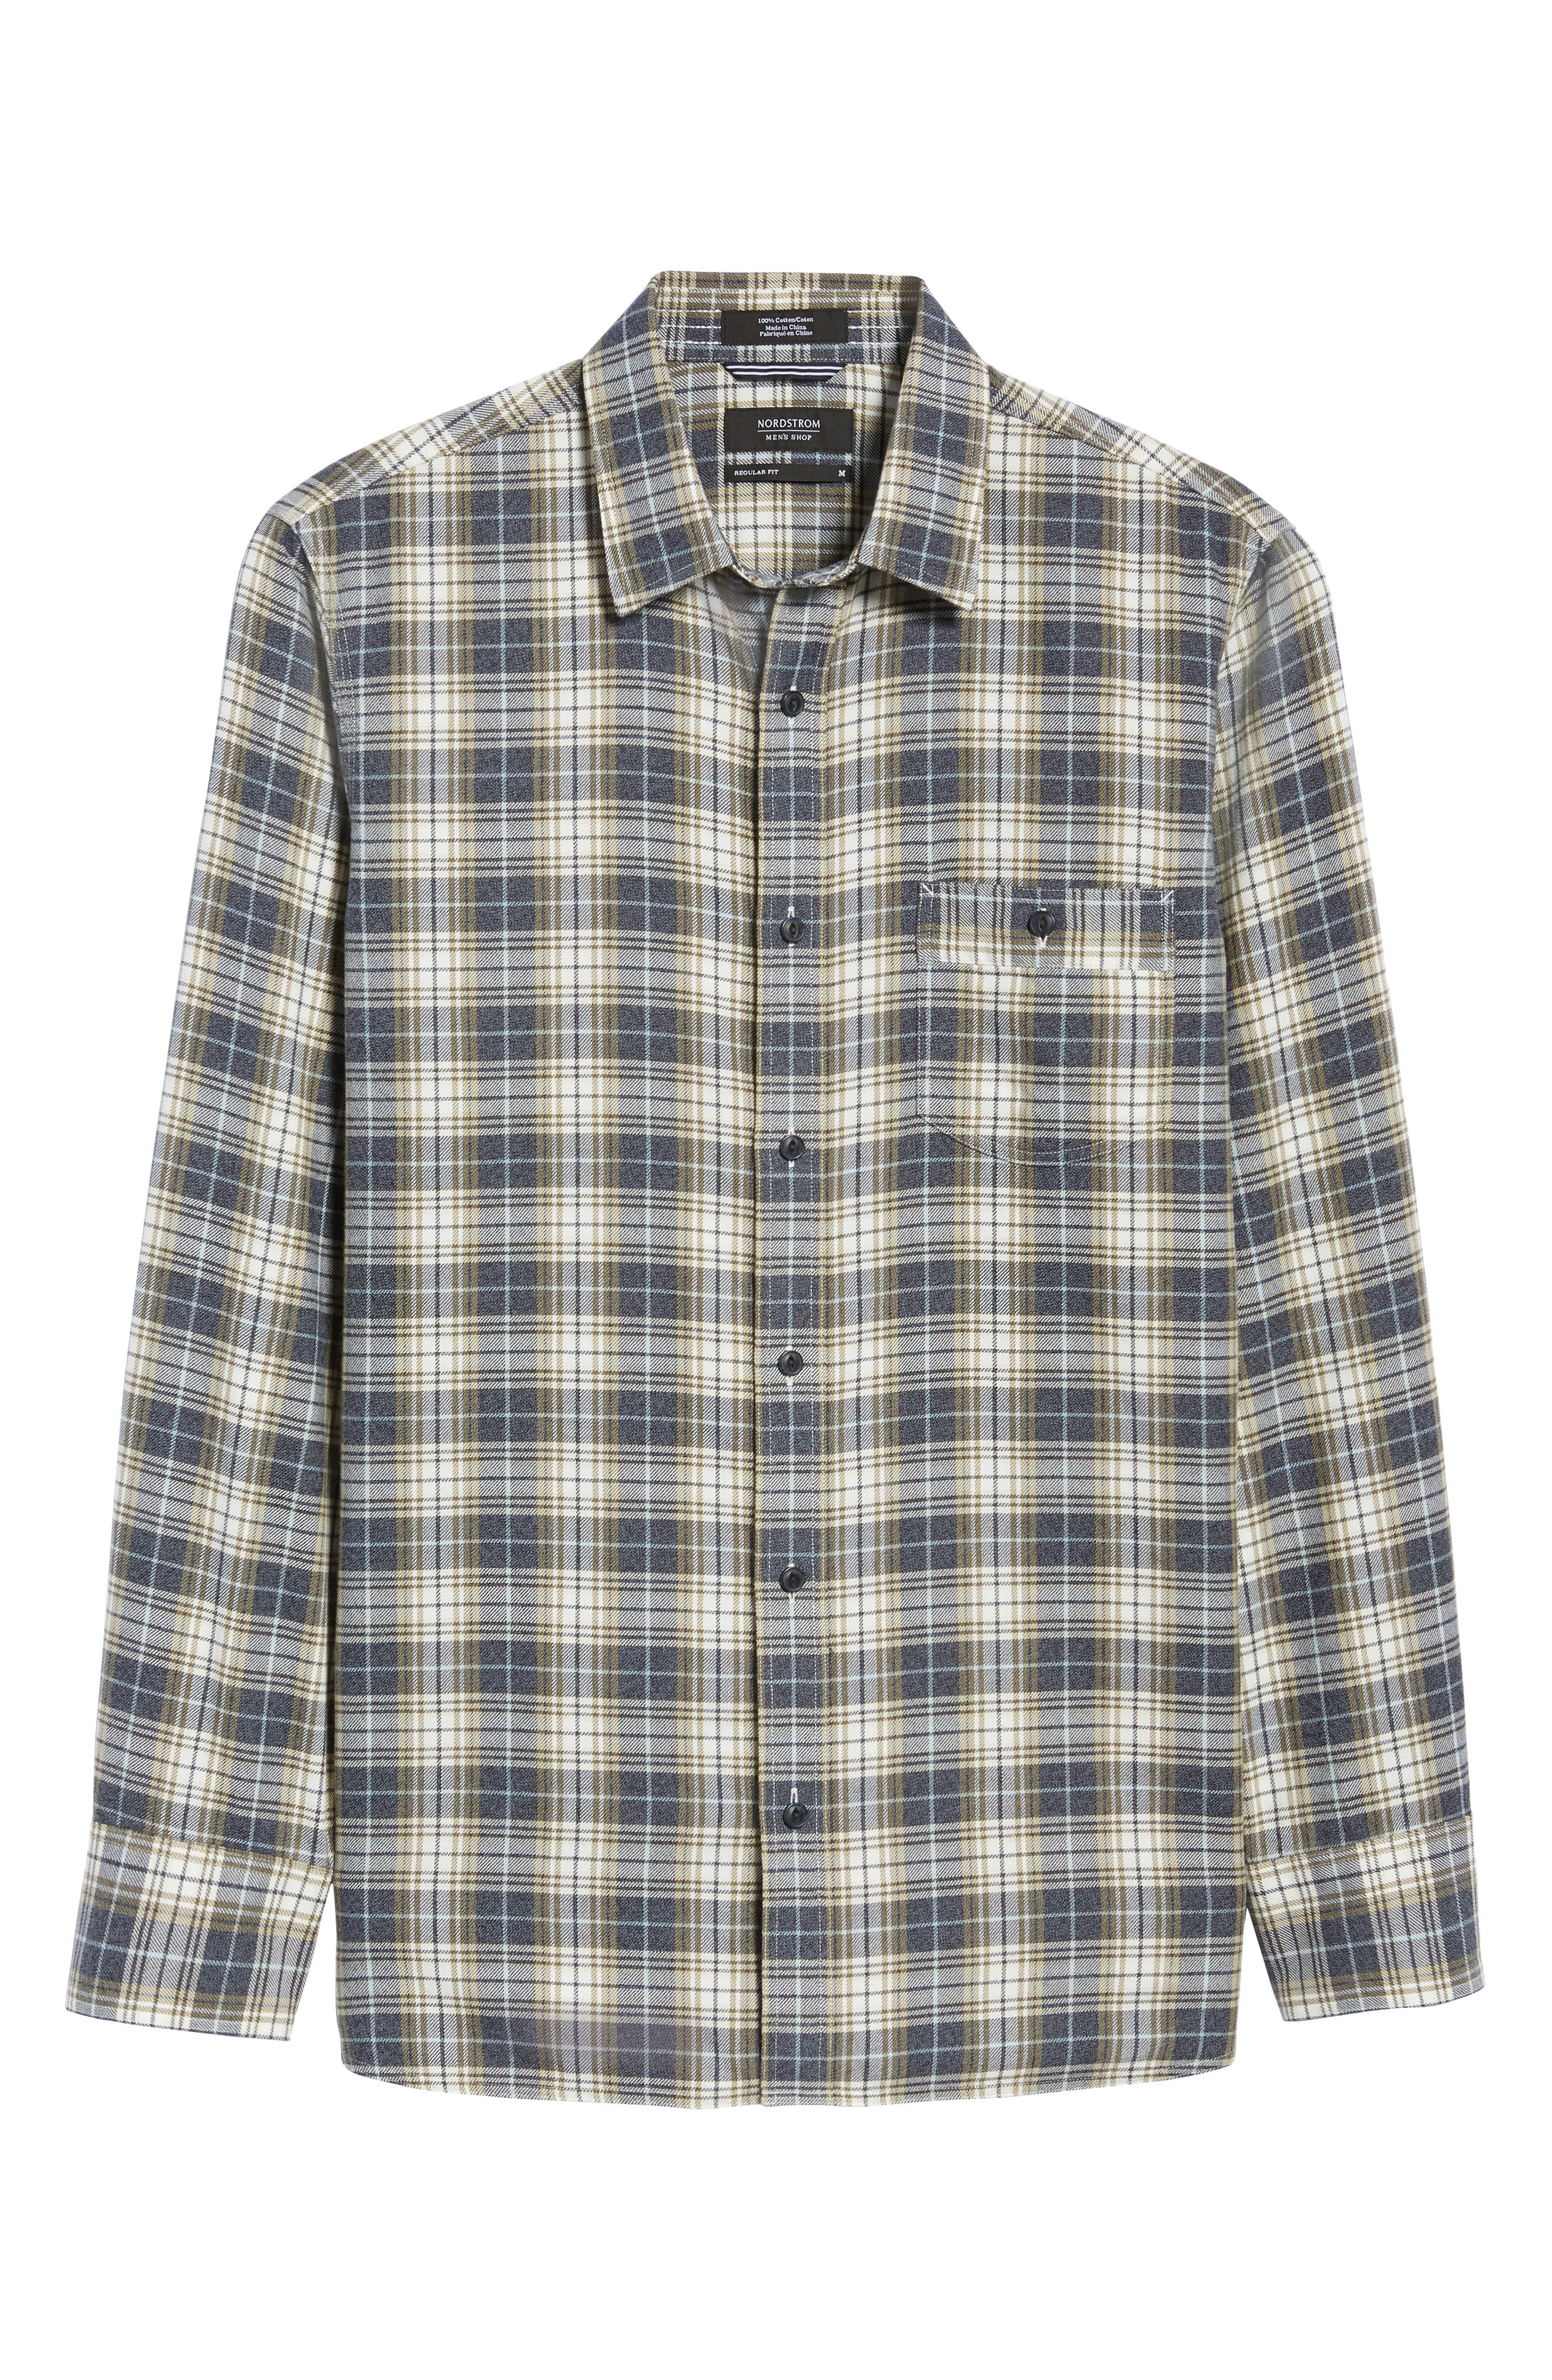 Trucker Regular Fit Plaid Flannel Shirt,                             Alternate thumbnail 5, color,                             IVORY EGRET TWILL PLAID